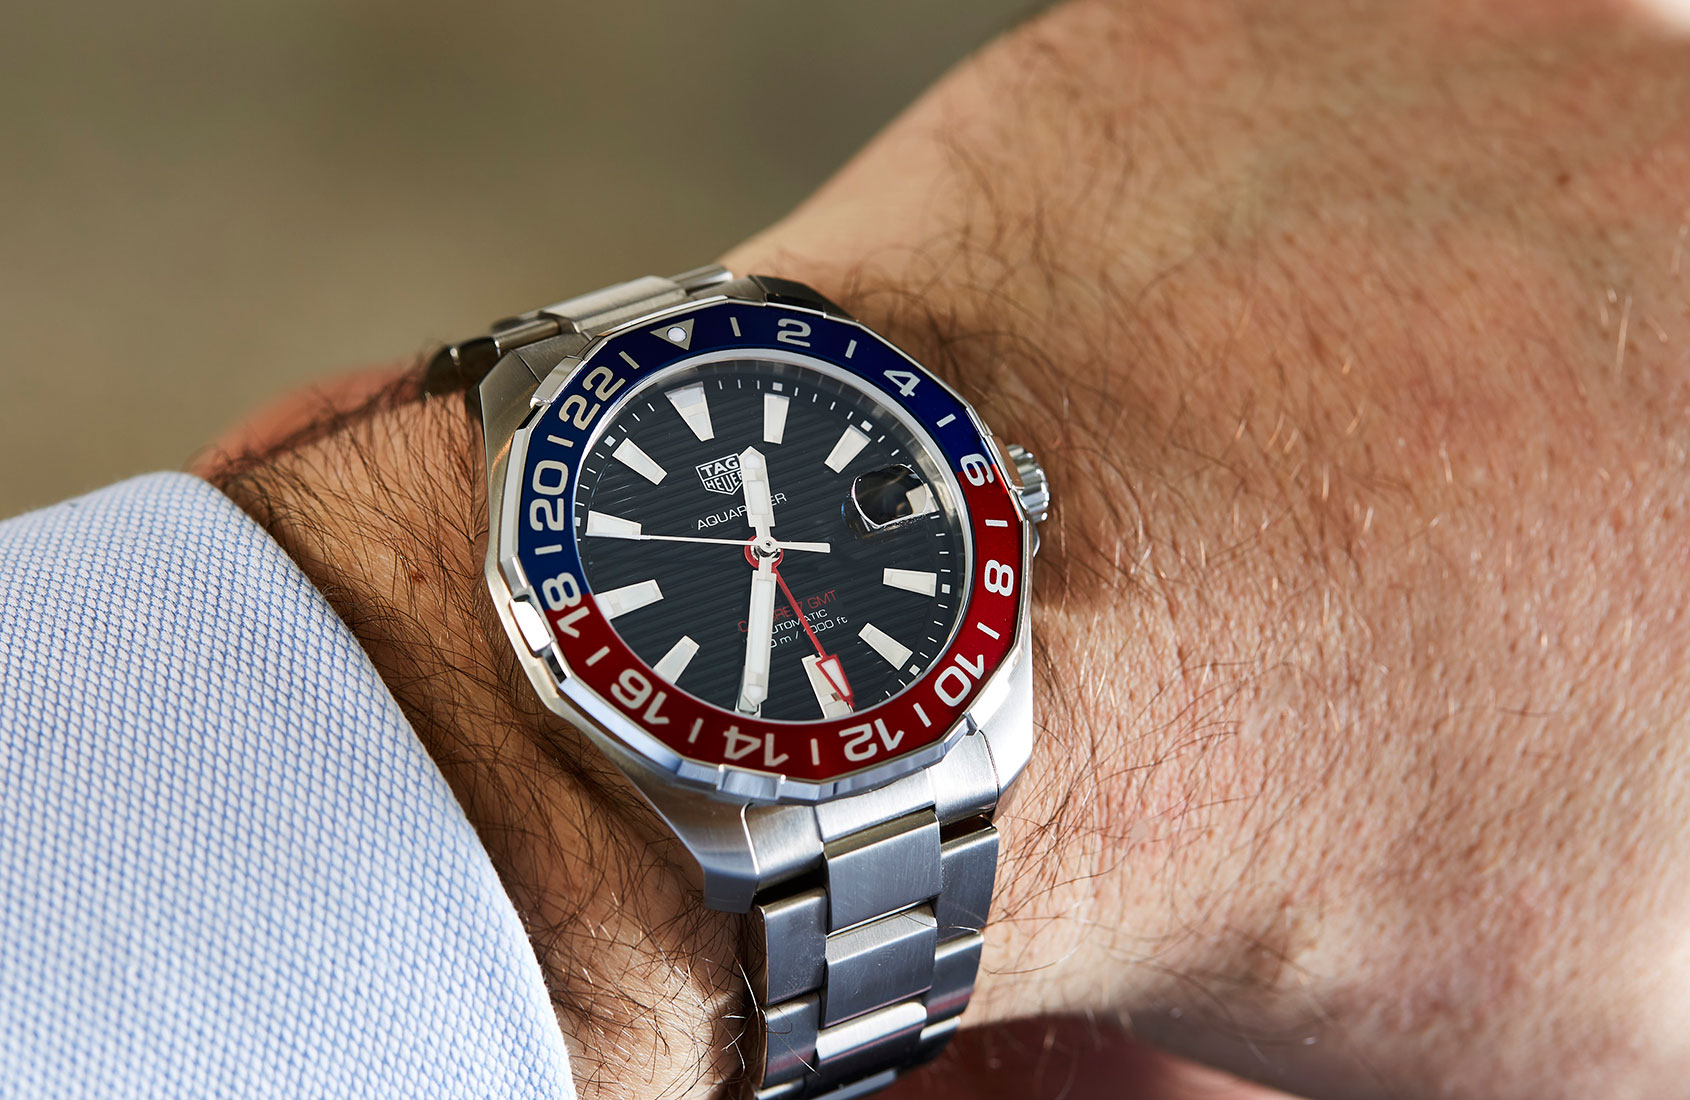 5 alternatives to the Rolex GMT-Master II